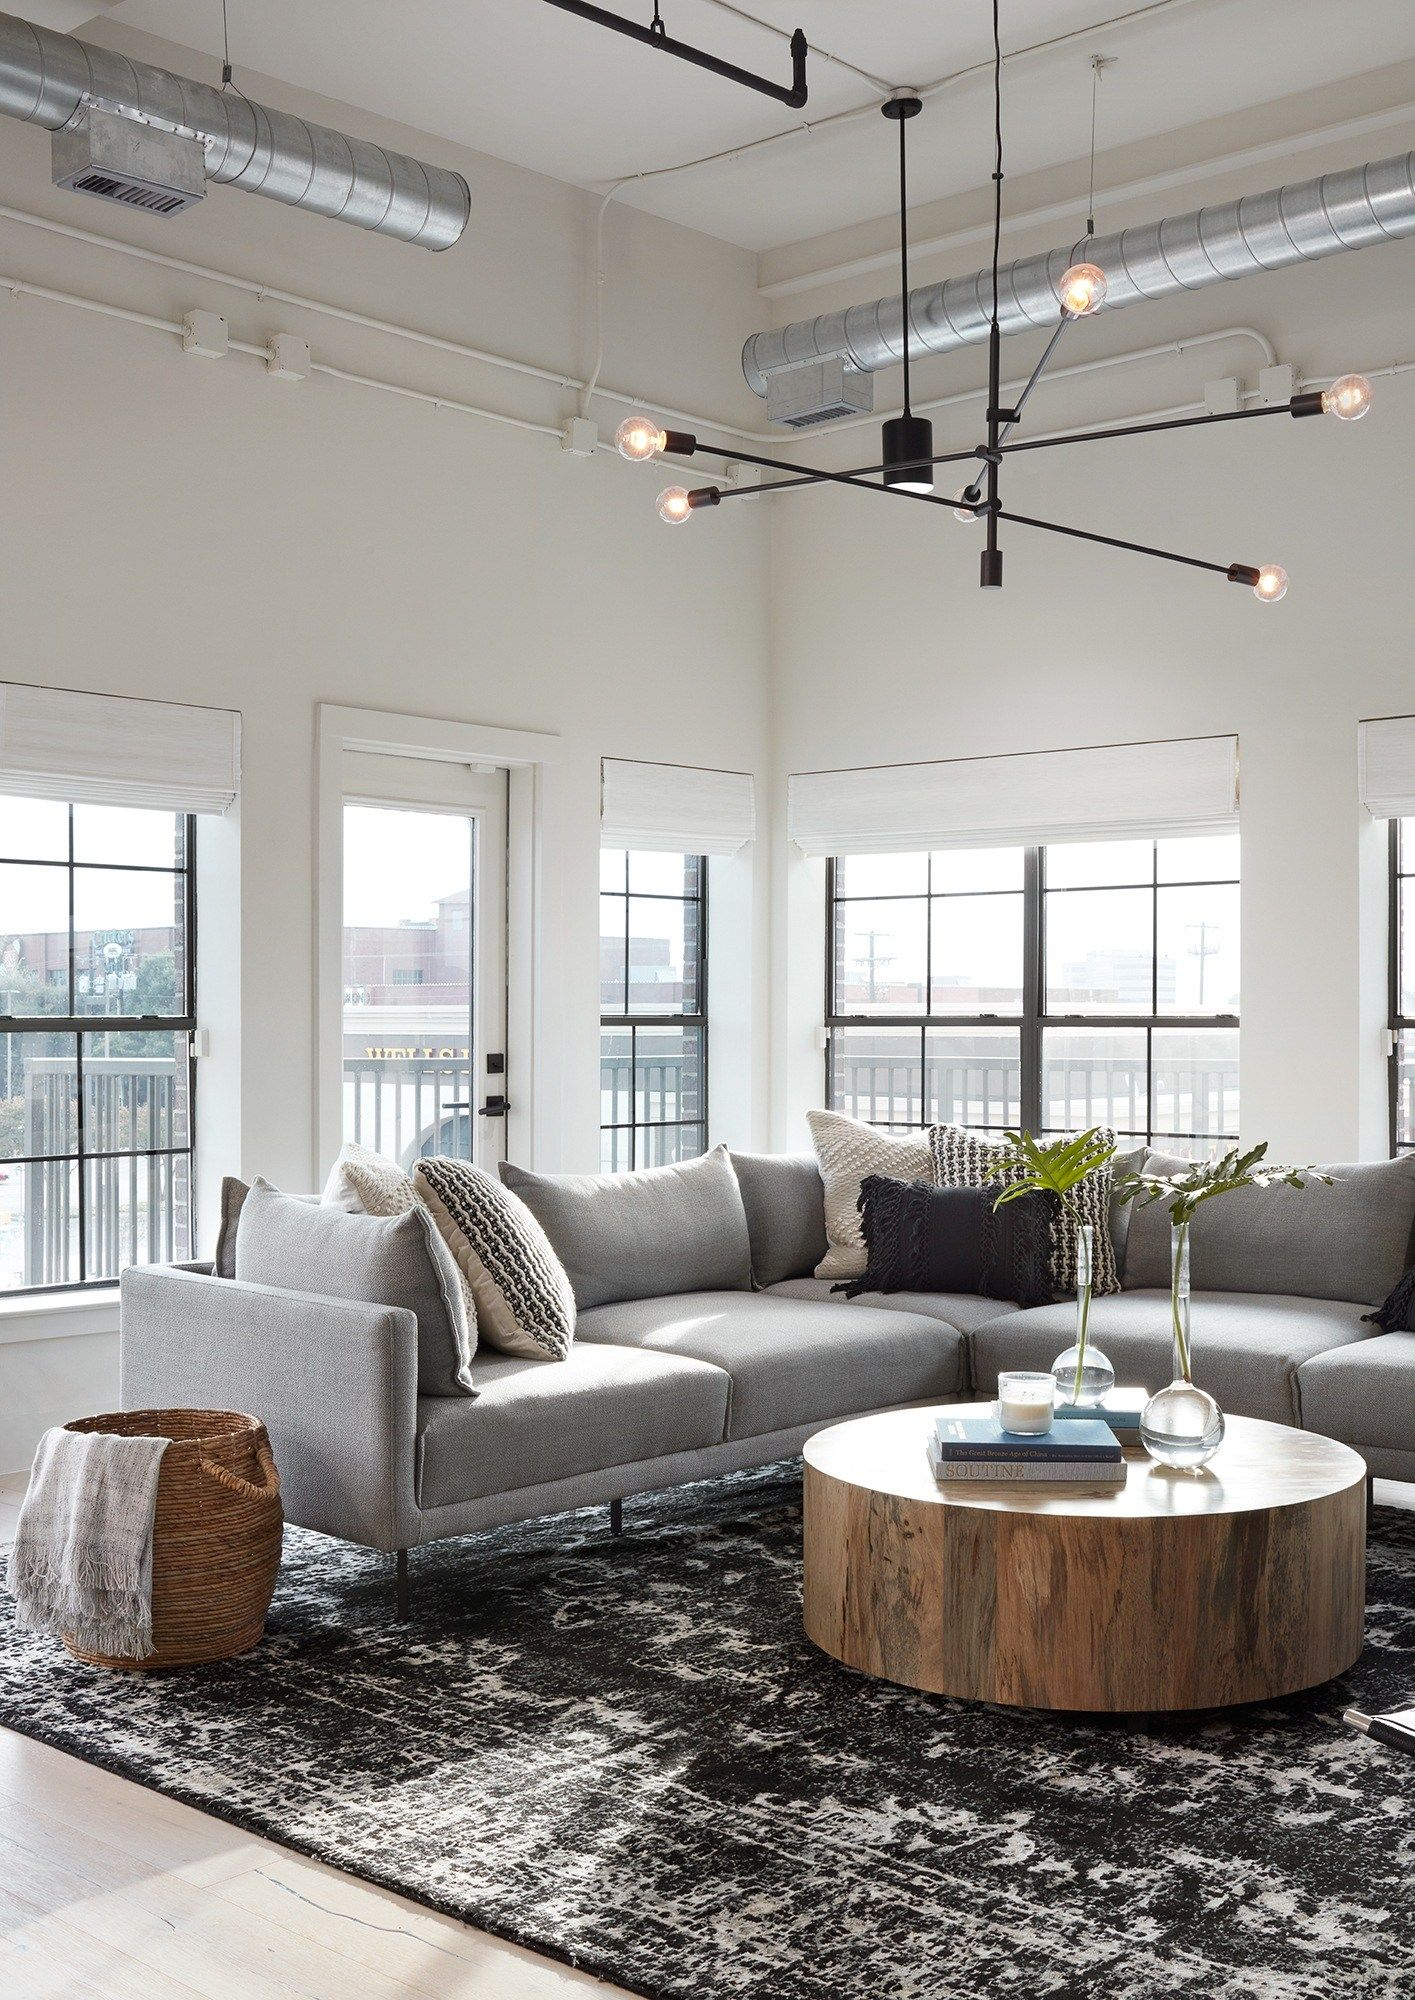 10 Best Living Rooms By Joanna Gaines | Joanna gaines ...